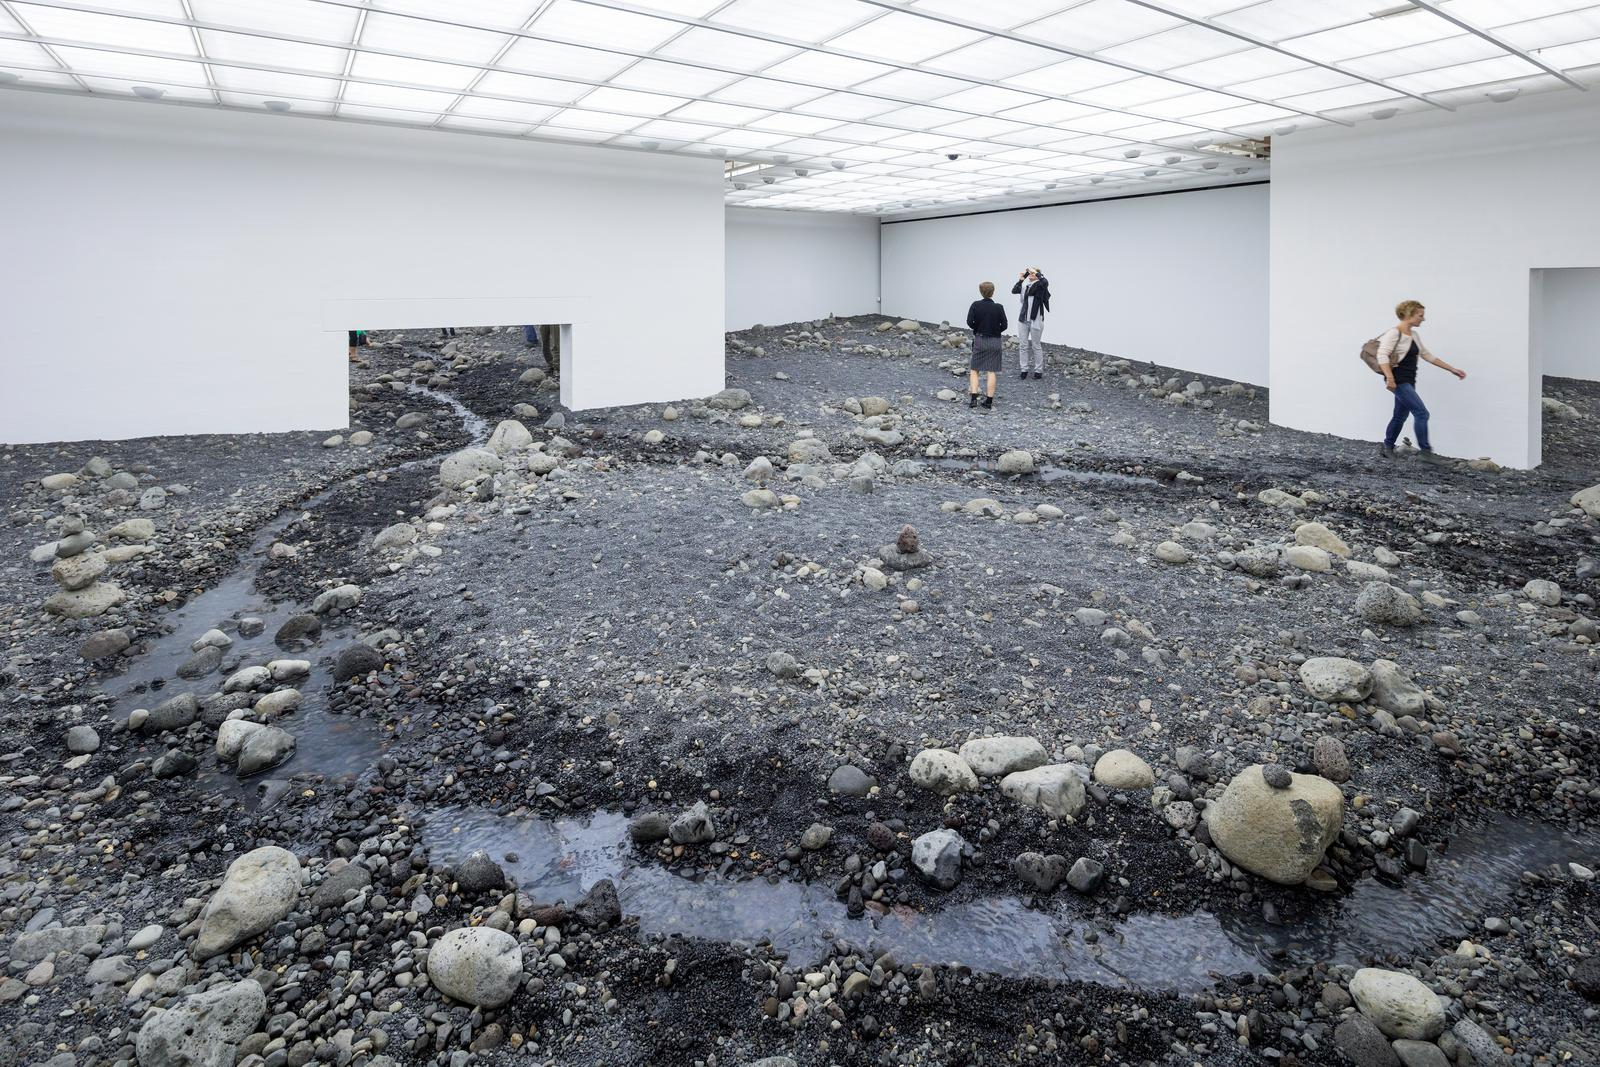 Riverbed Artwork Studio Olafur Eliasson